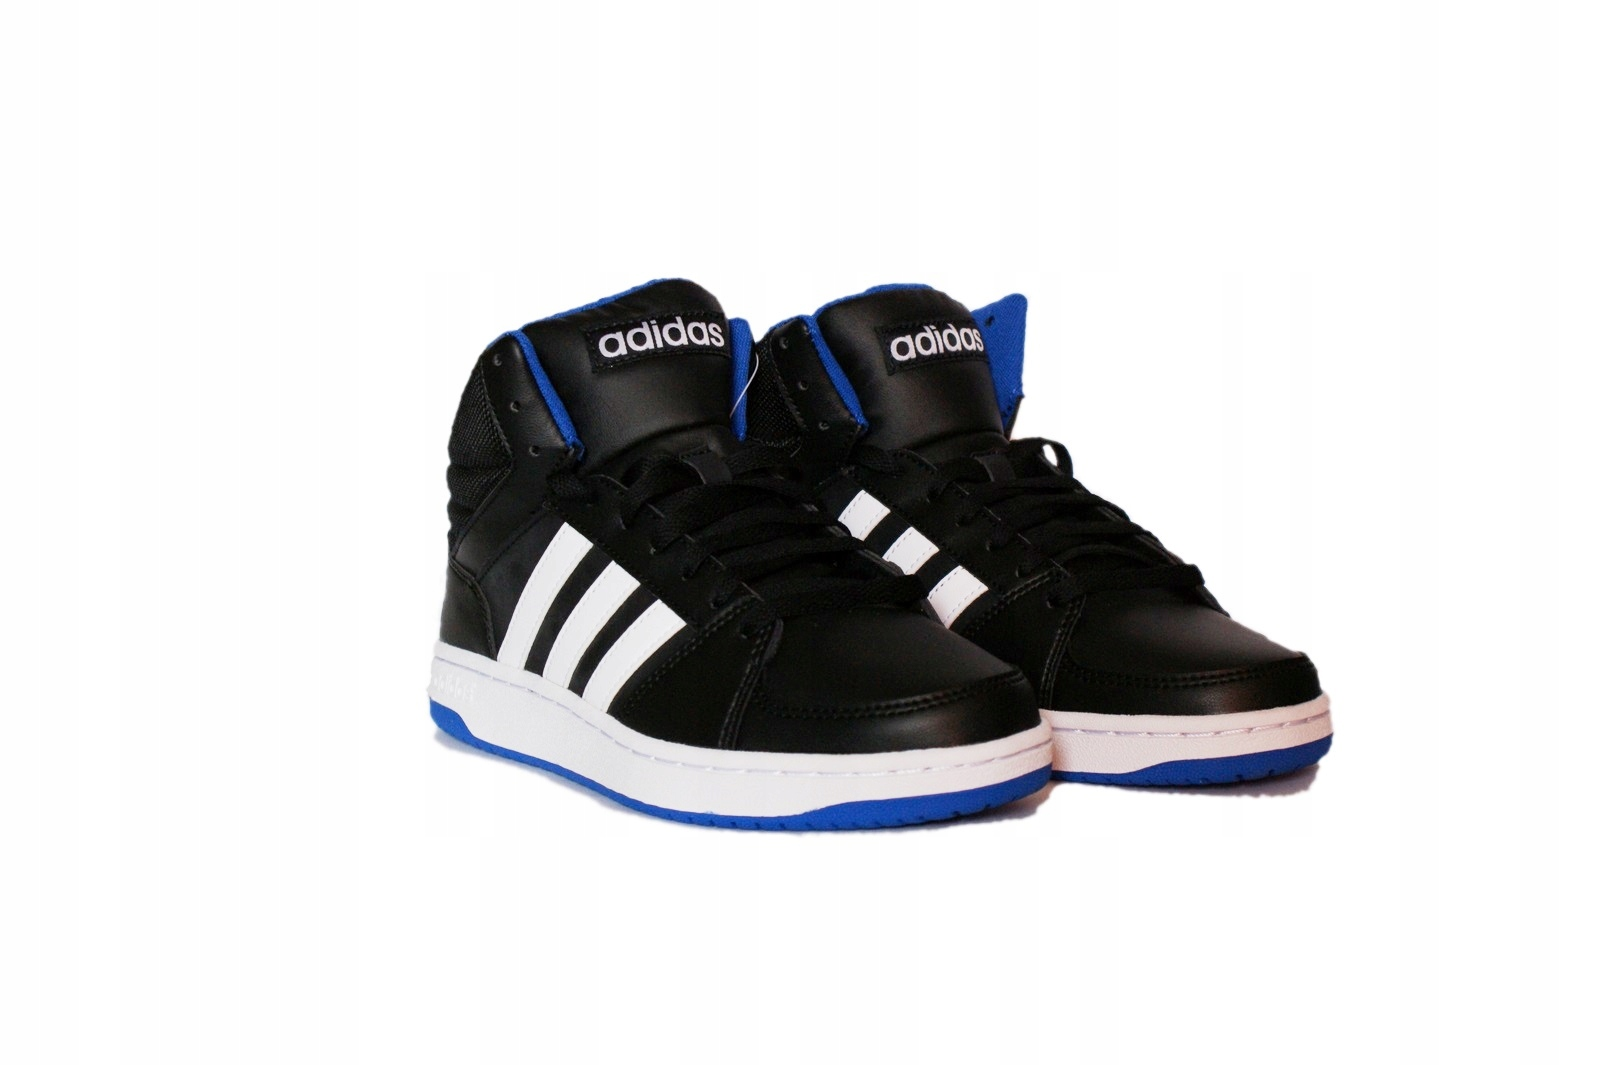 innovative design 53ebf 956ee Buty Adidas Hoops VS MiD 40 Wysokie Czarne